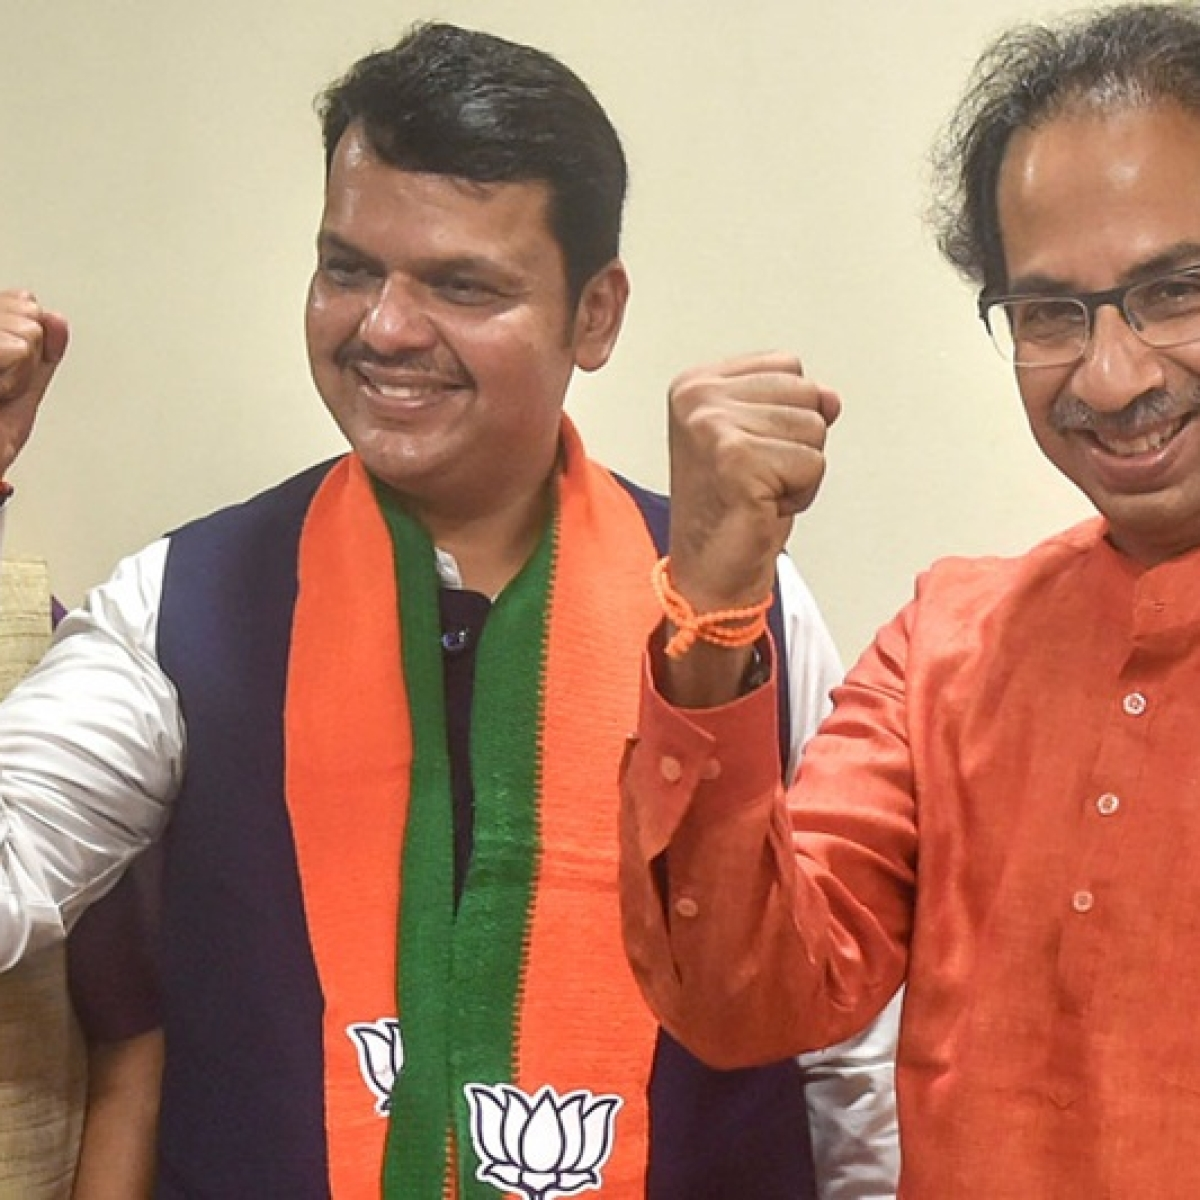 BJP in catch-22 situation over 50-50 seat-sharing pact with ally Shiv Sena